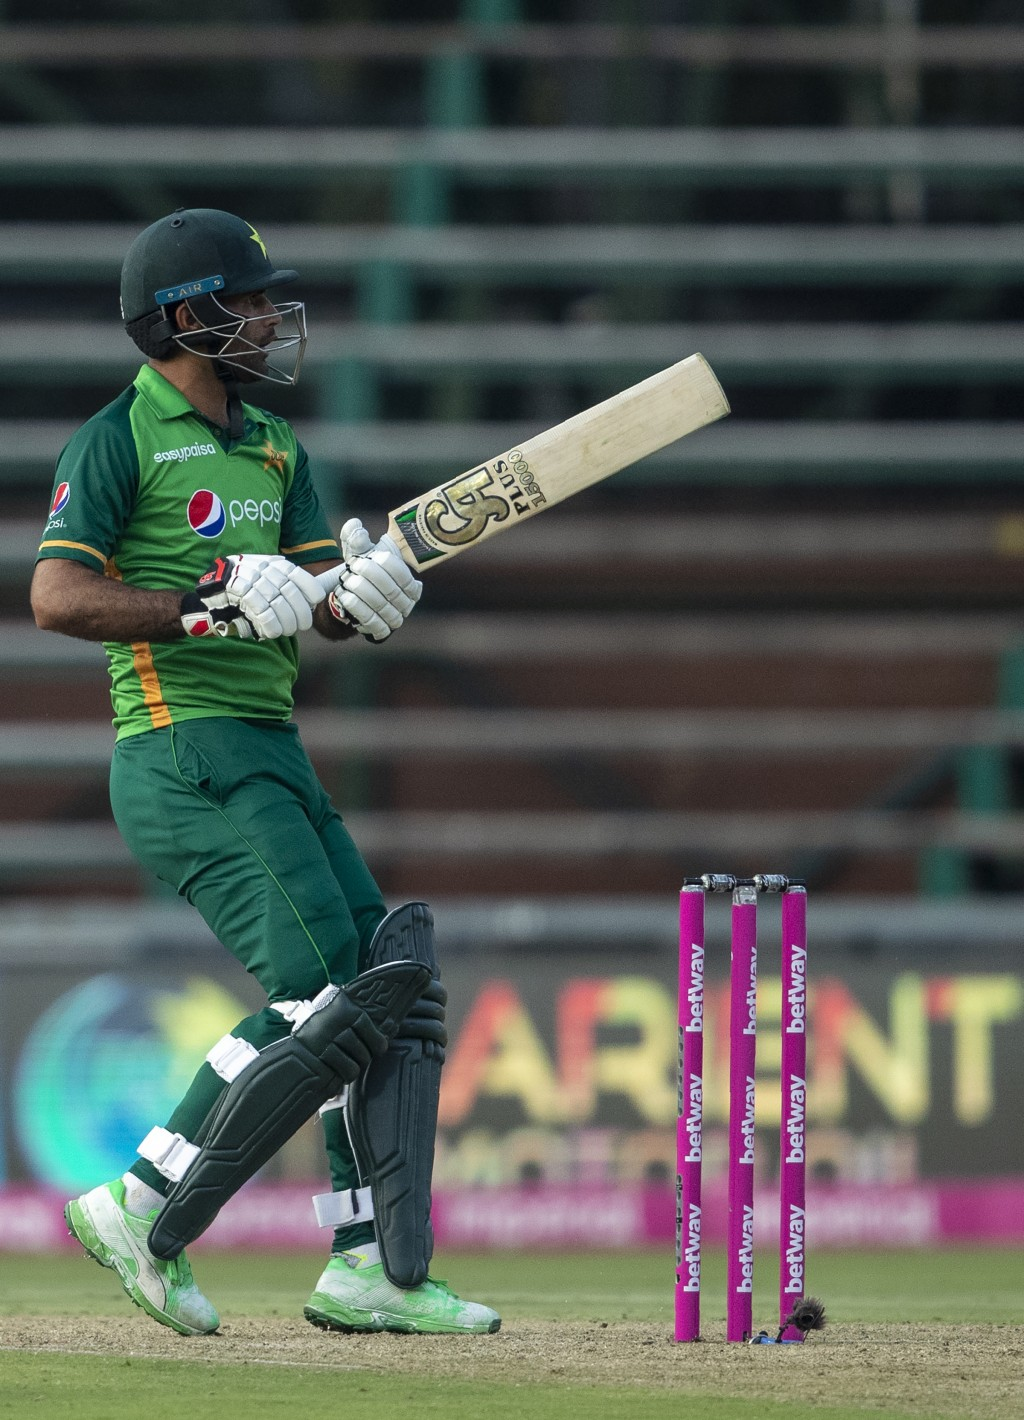 Pakistan's batsman Fakhar Zaman watches his shot hit a boundary to score a century during the second One Day International cricket match between South...